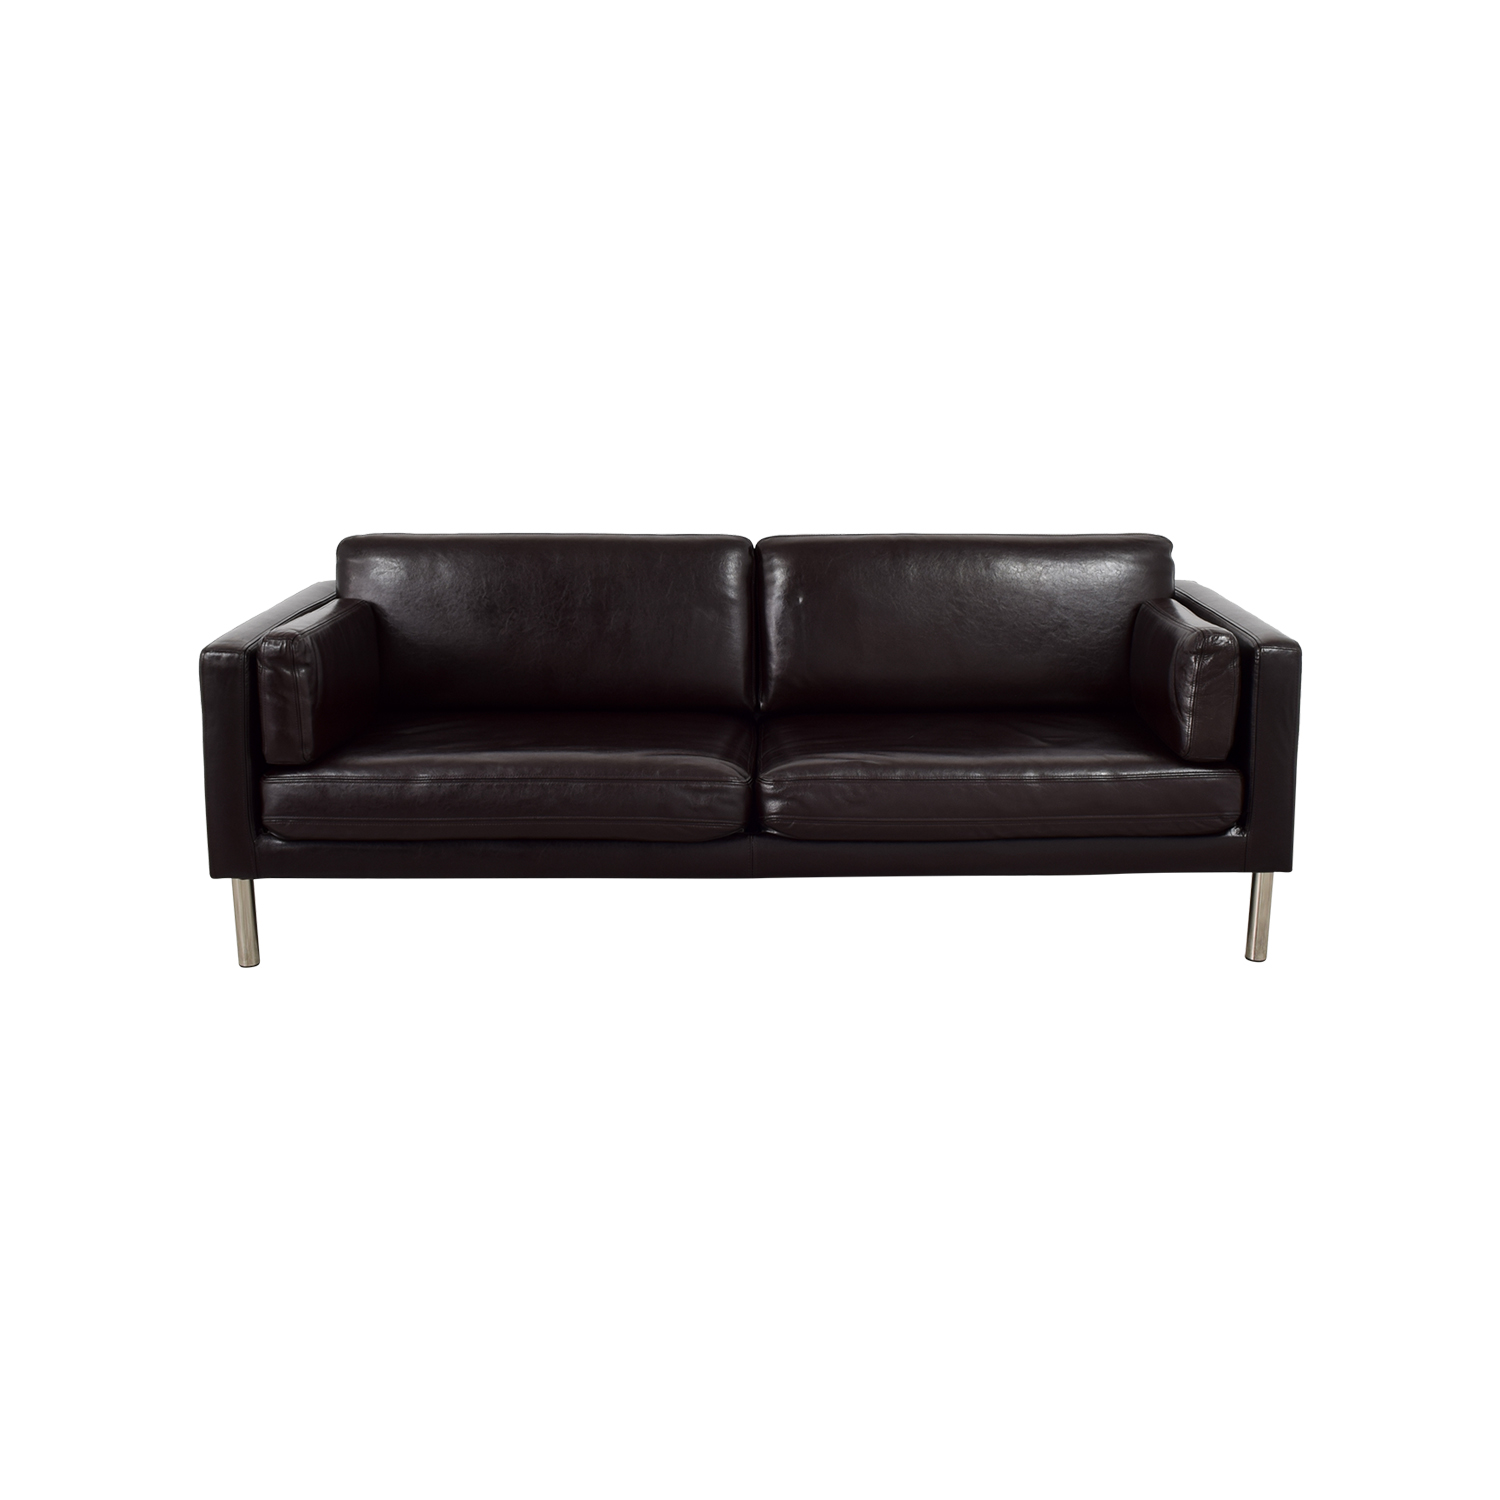 41 off ikea ieka sater brown leather couch sofas